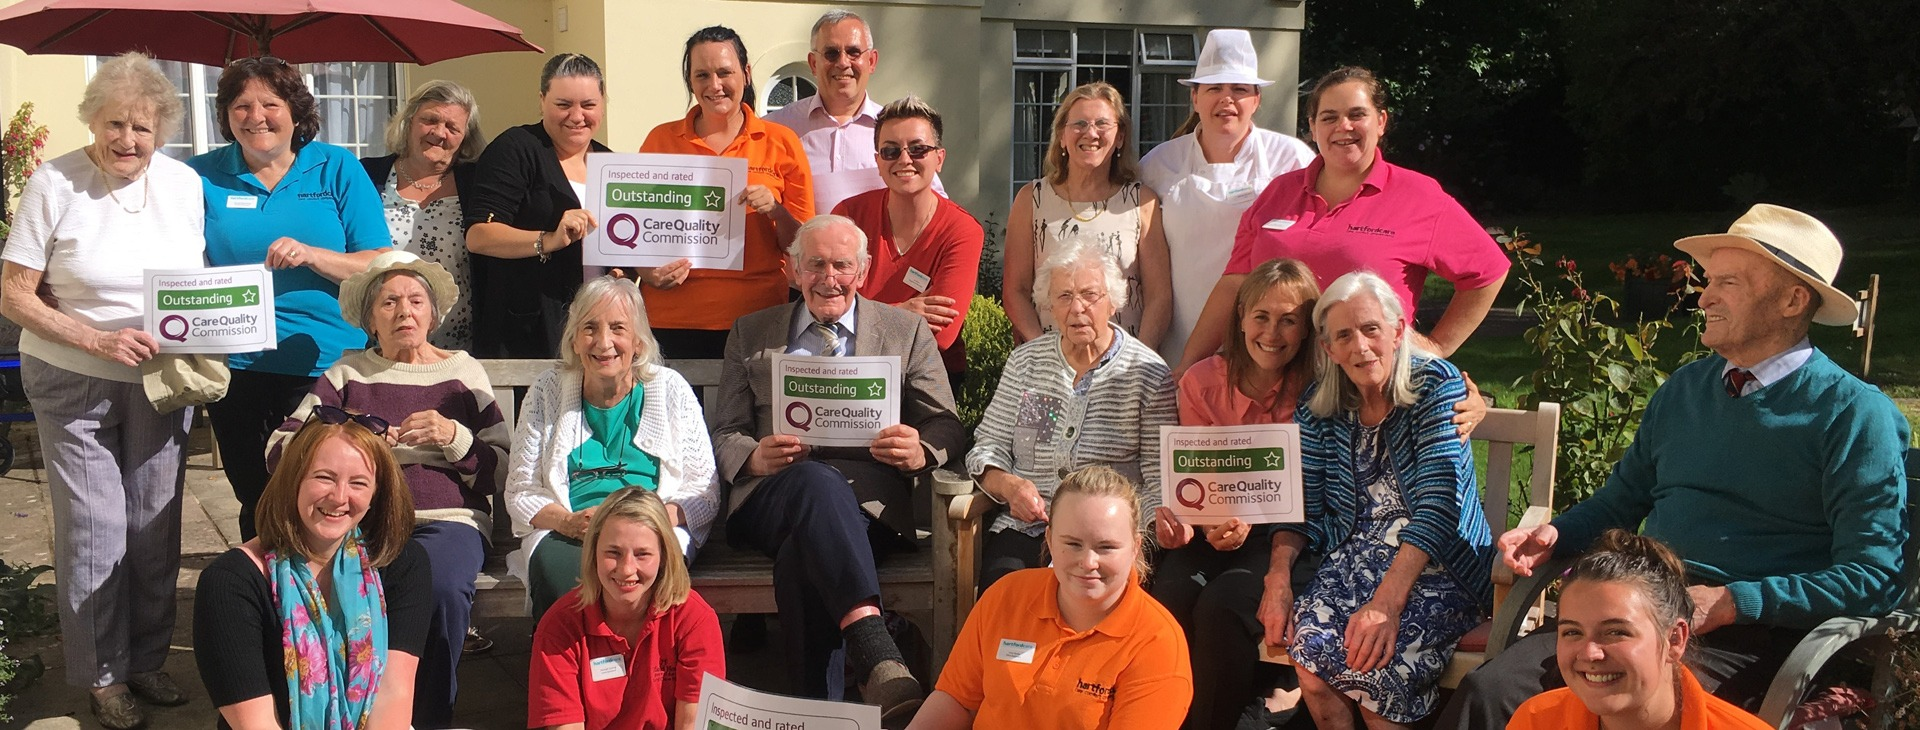 Tegfield staff and residents celebrating outstanding CQC result in the garden